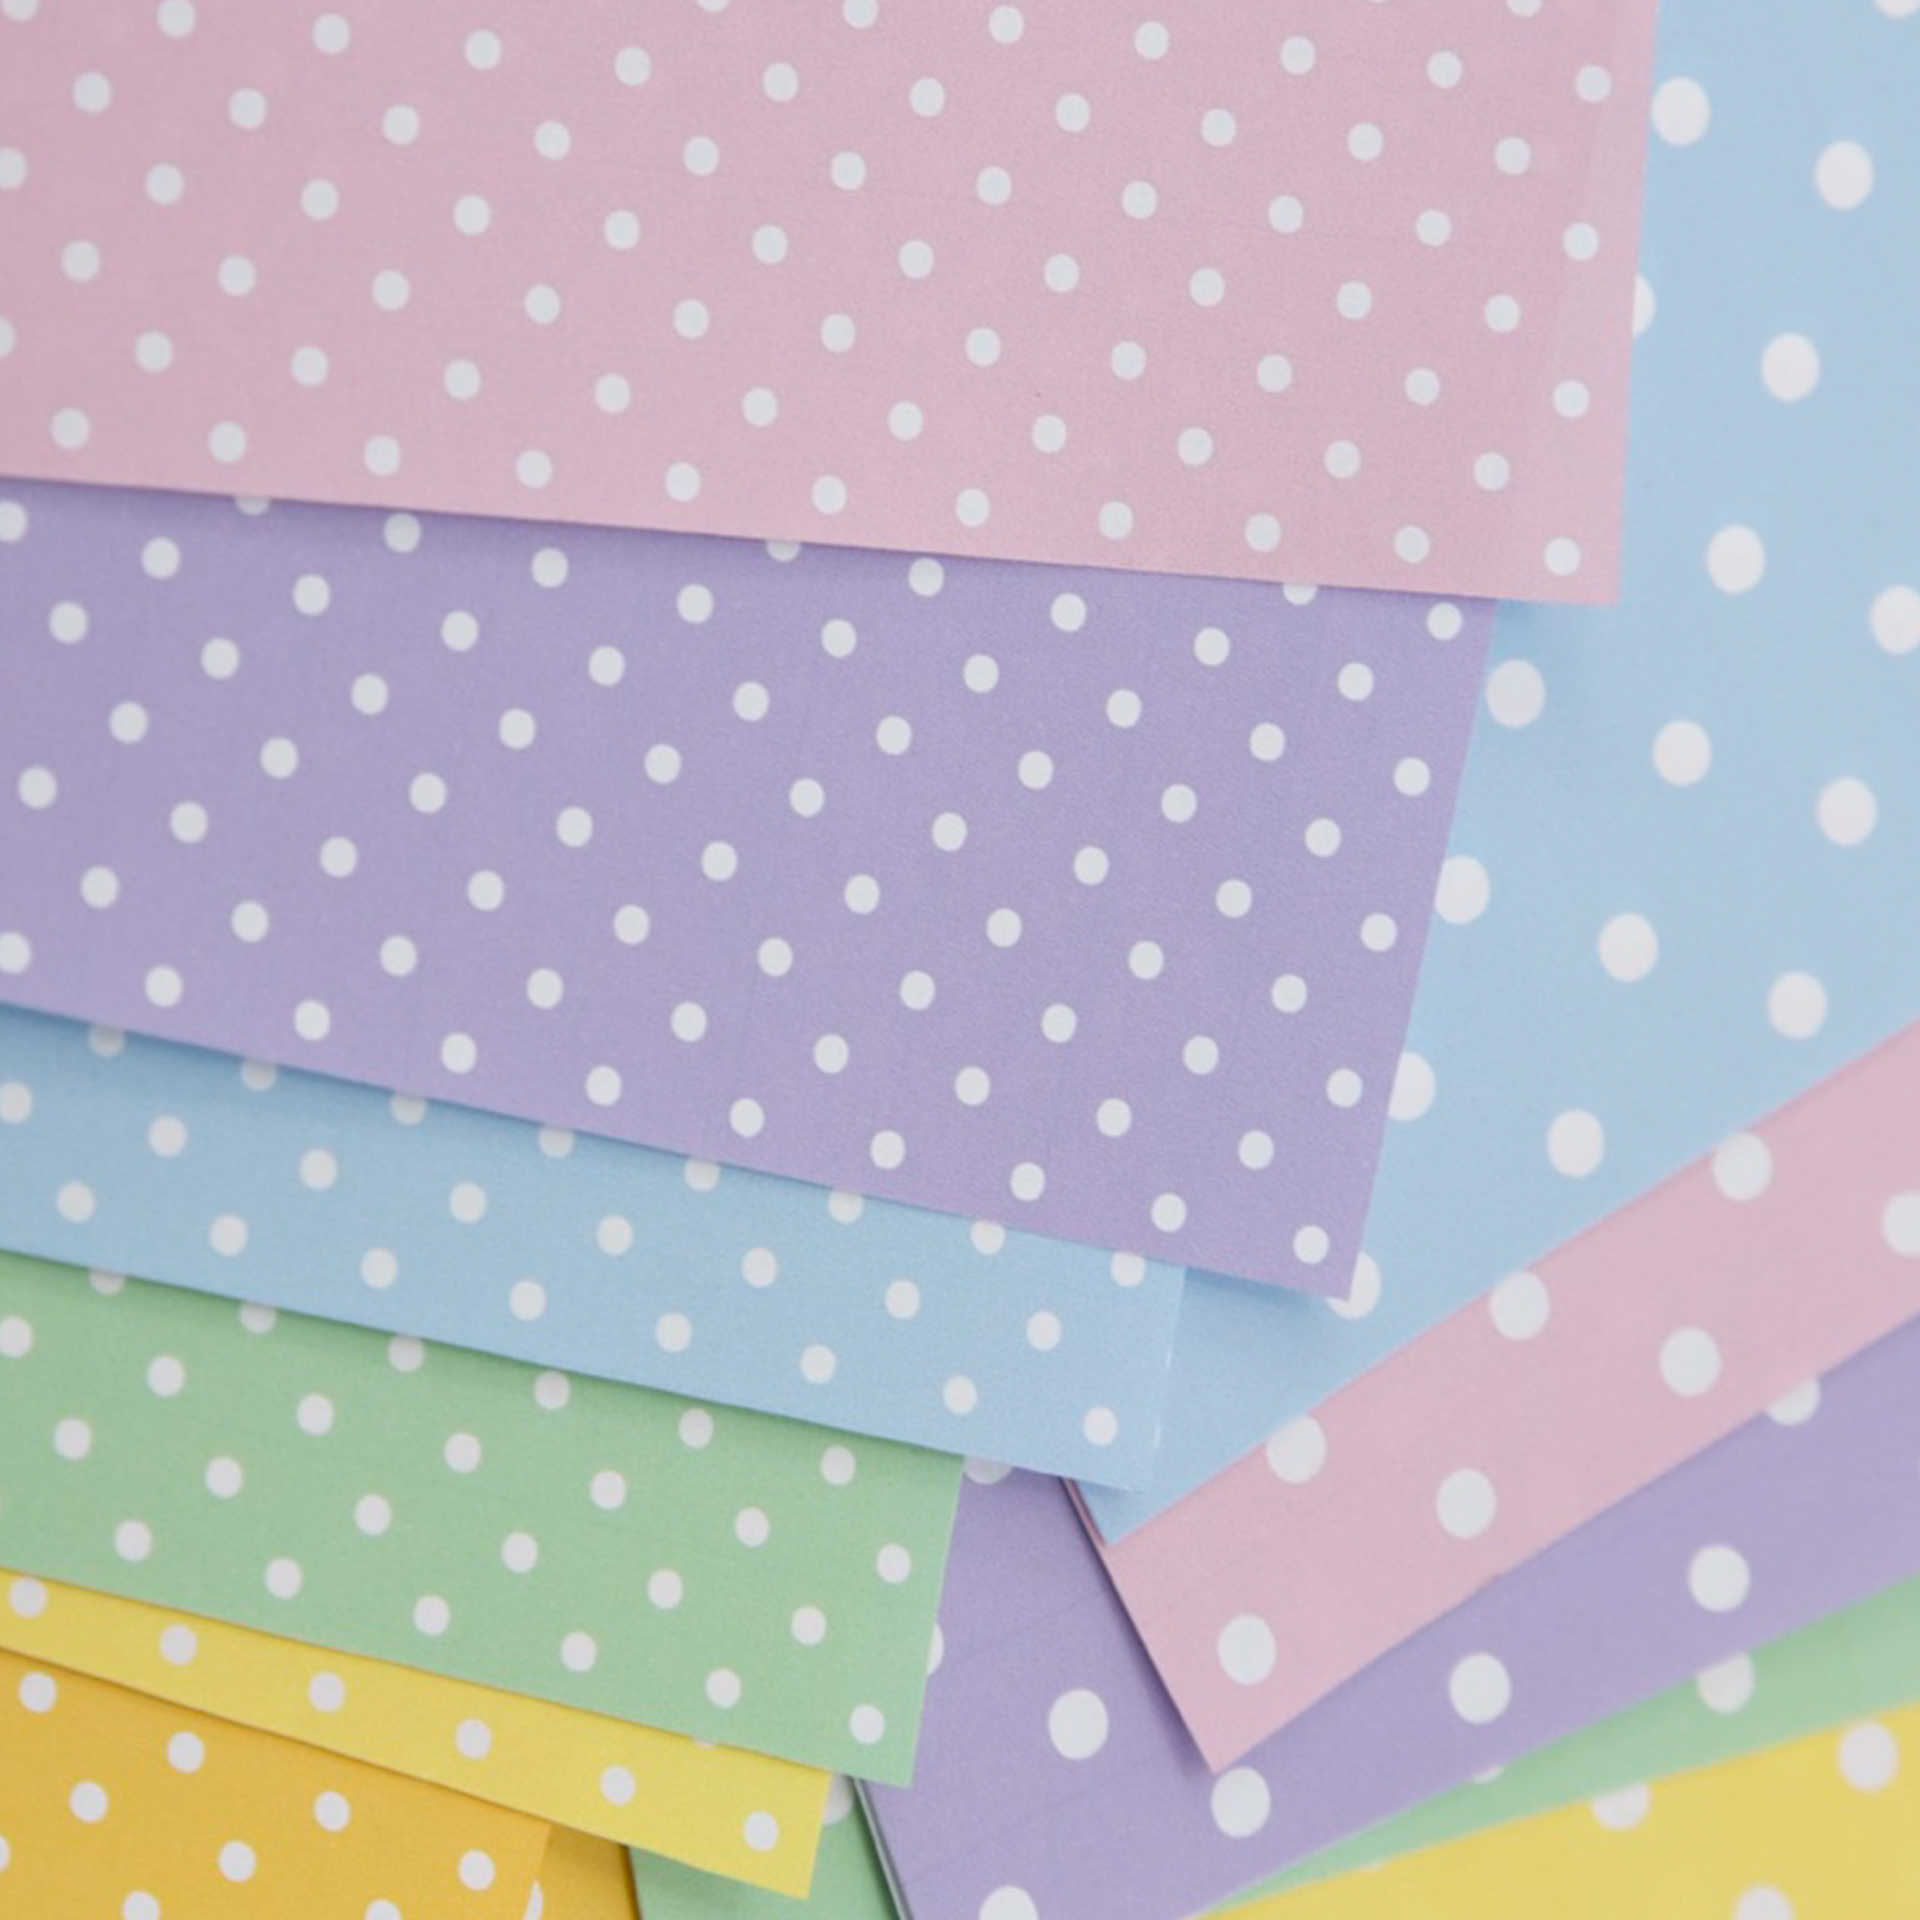 picture relating to Printable Pattern Paper named Polka Dot Routine Printable Origami Paper